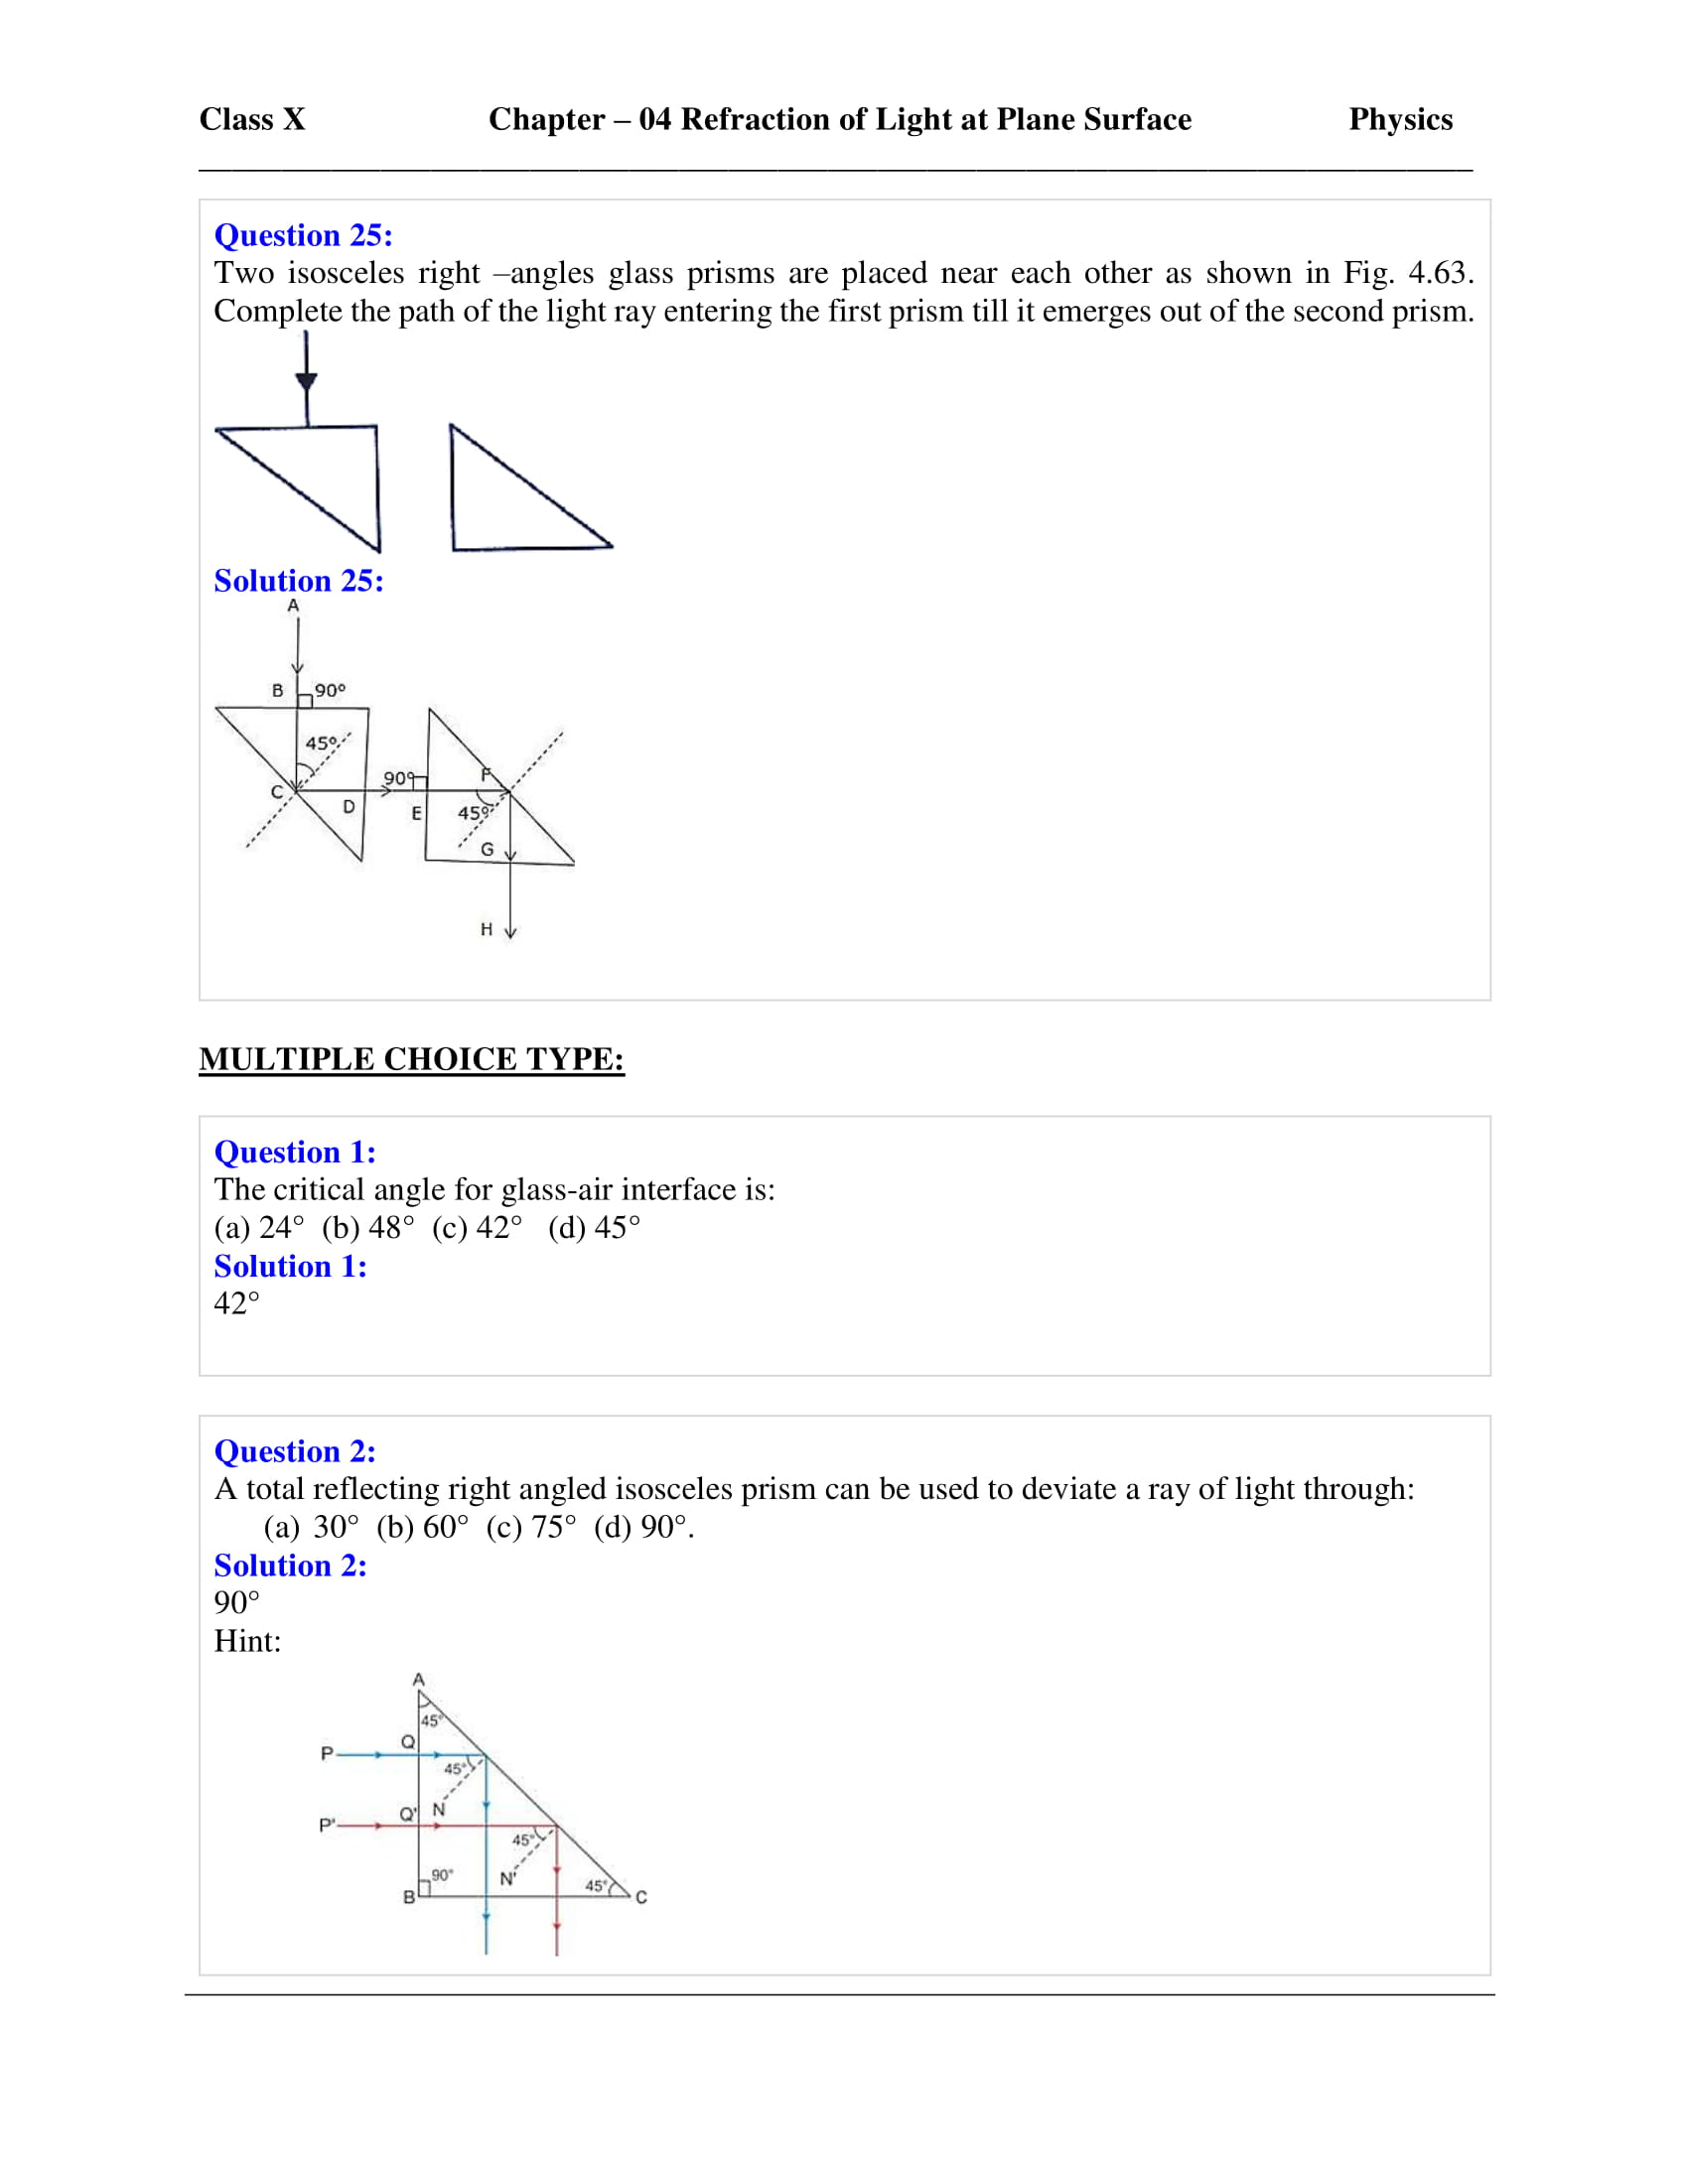 icse-selina-physics-solutions-class-10-chapter-4-refraction-of-light-at-plane-surfaces-38